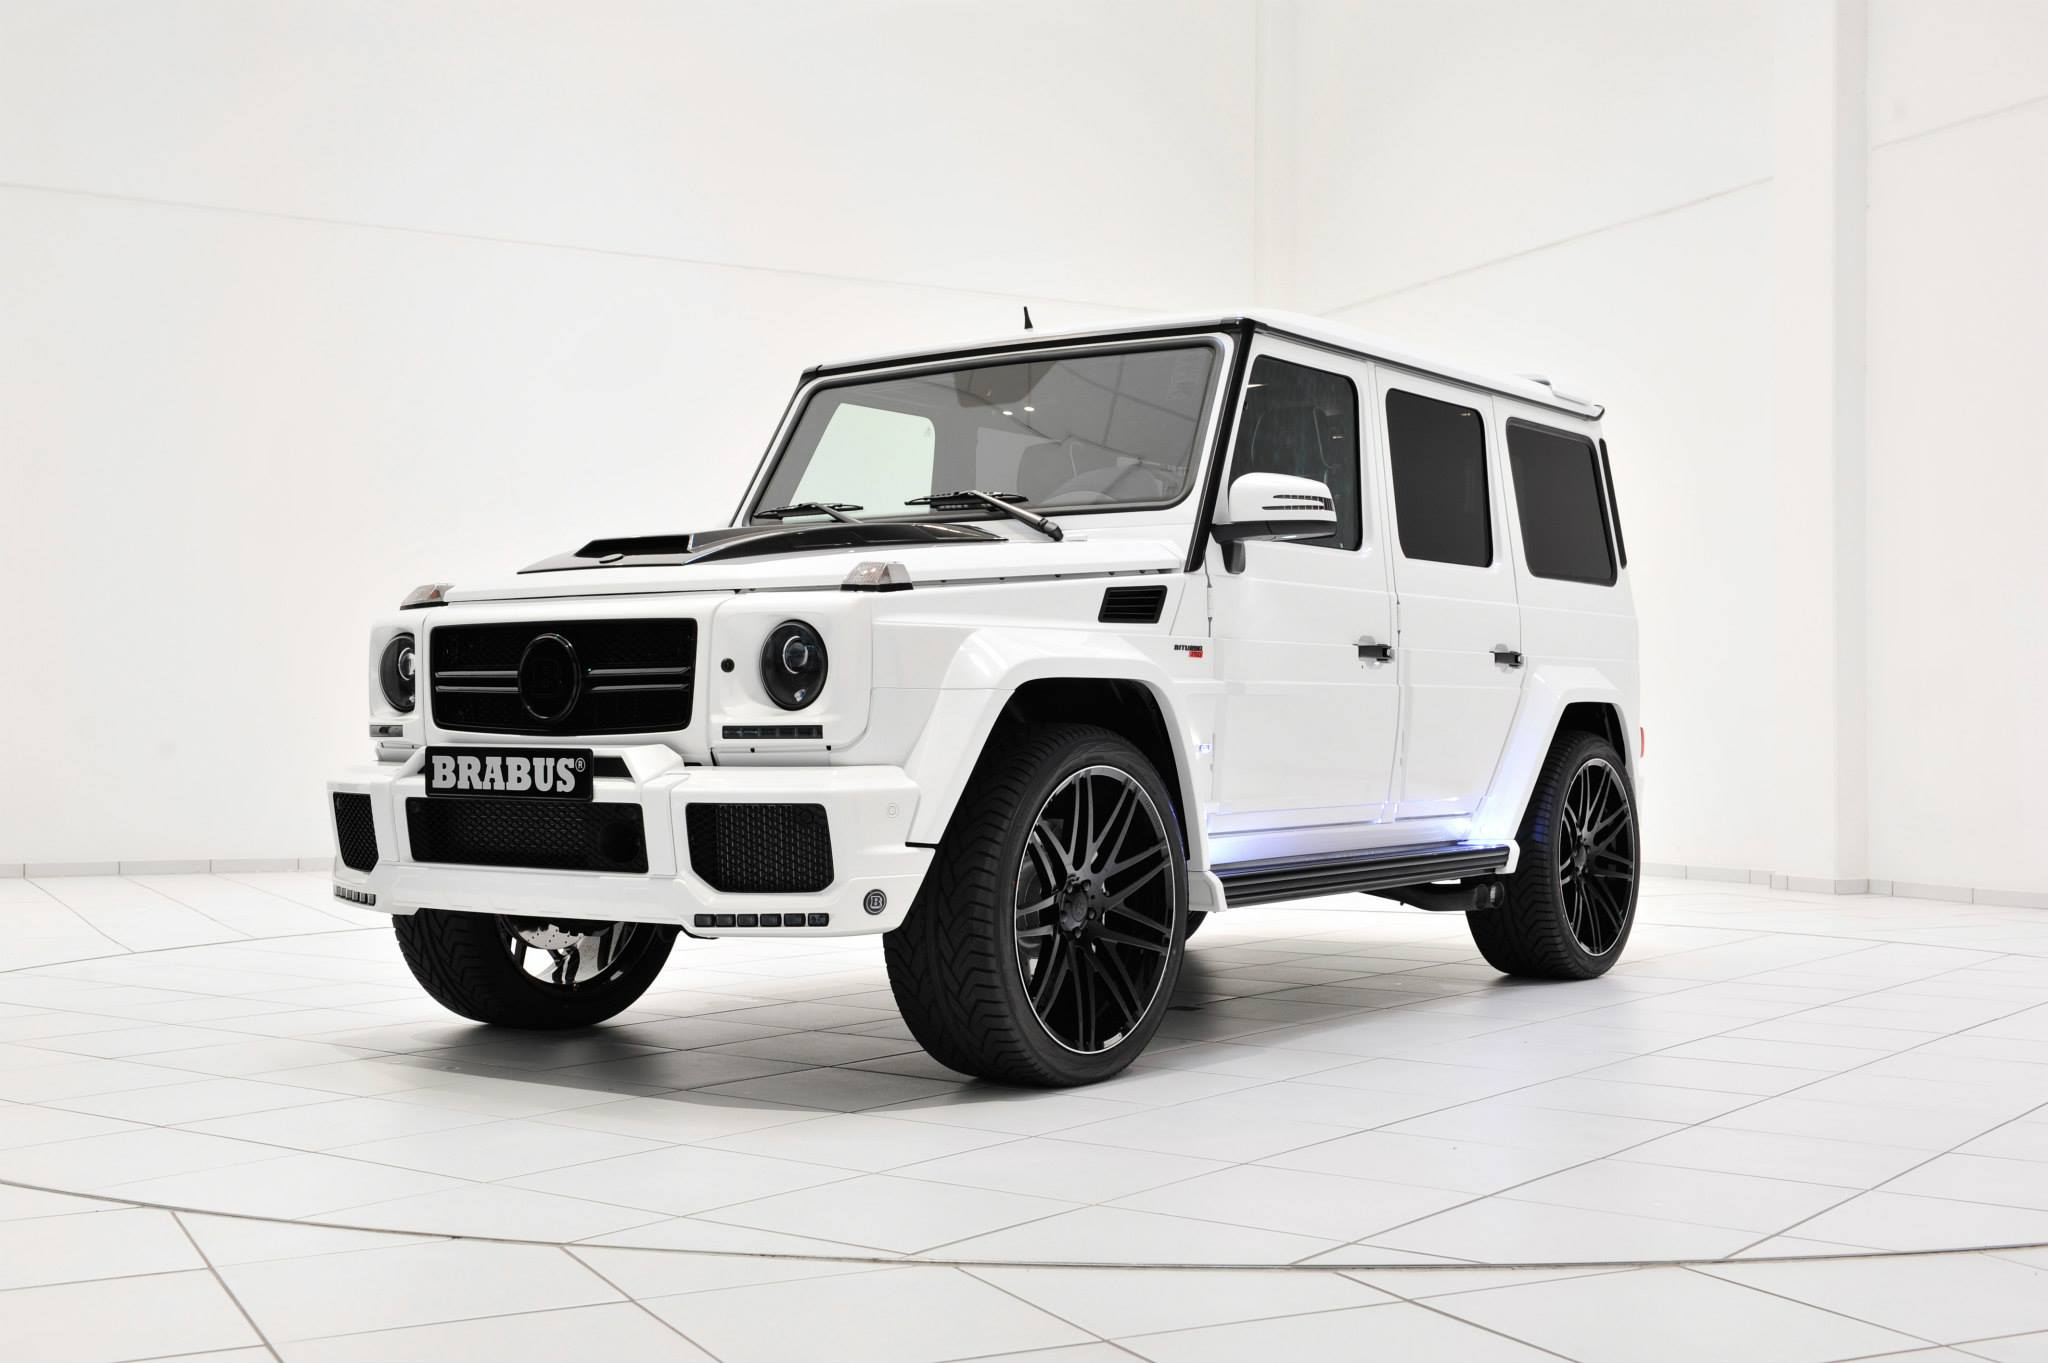 Brabus 700 Puts a Stormtrooper Look on the G63 AMG - autoevolution